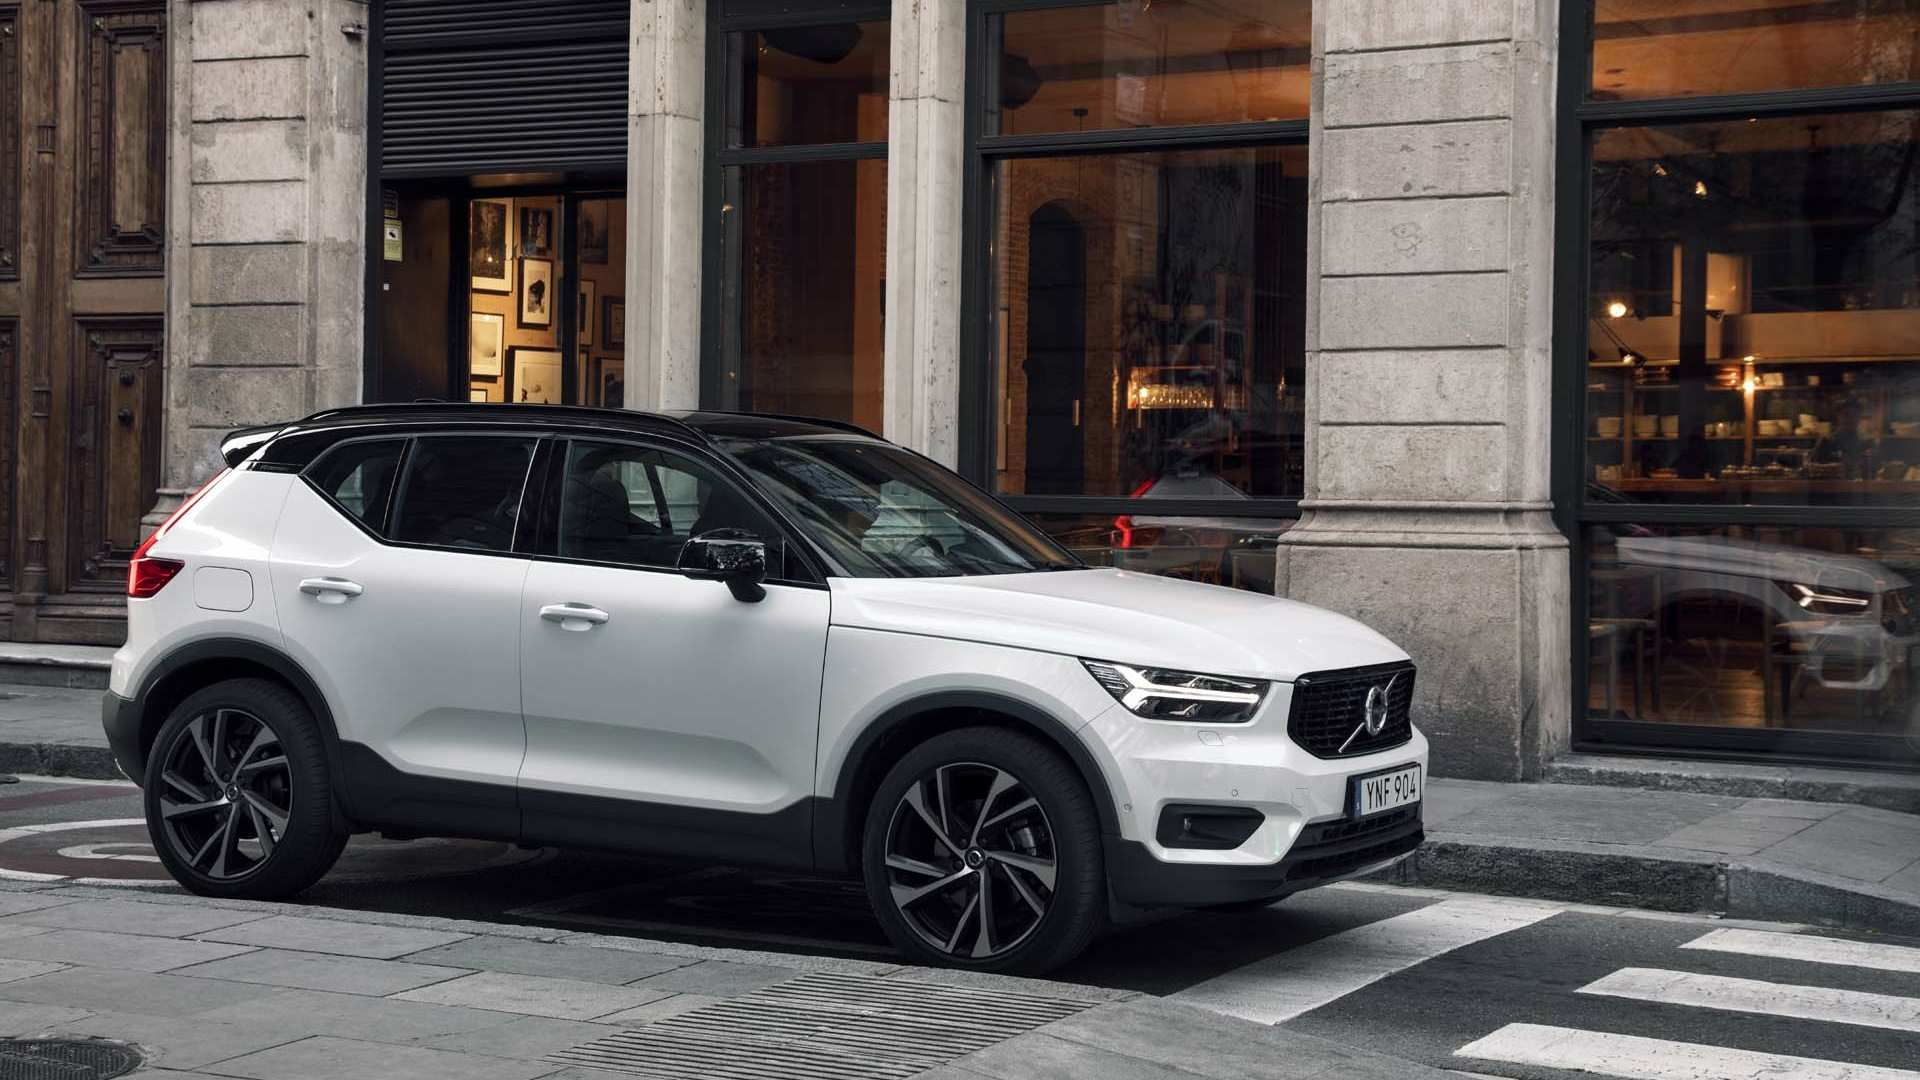 72 Concept of Volvo In 2019 Pictures by Volvo In 2019